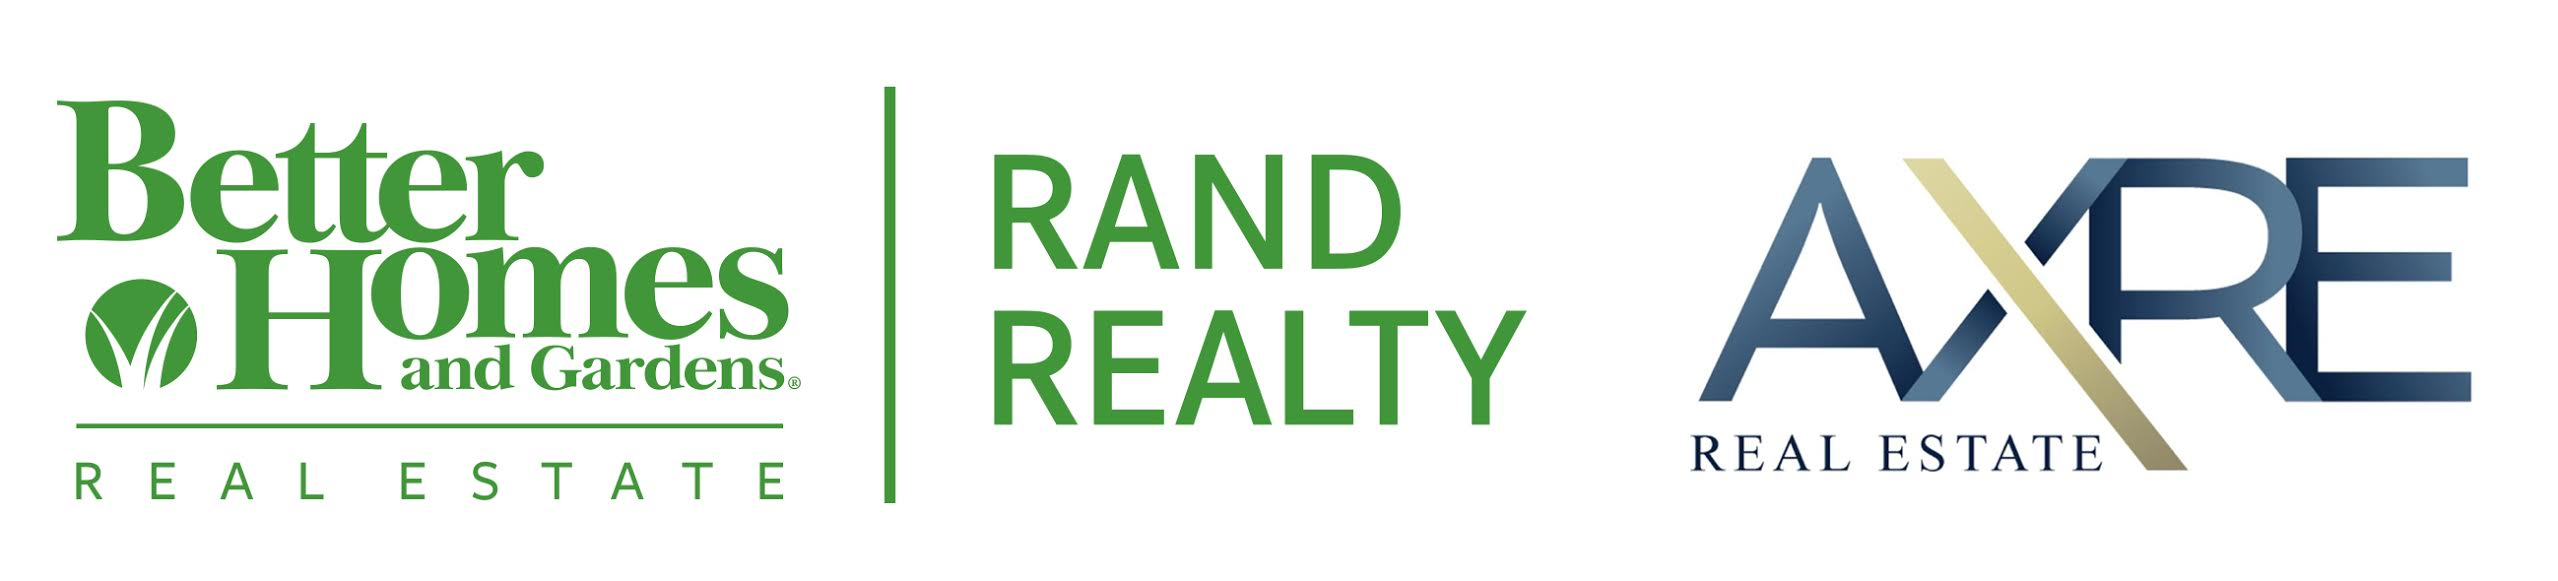 Axre Corp Joins Better Homes And Gardens Rand Realty Better Homes And Gardens Rand Realty